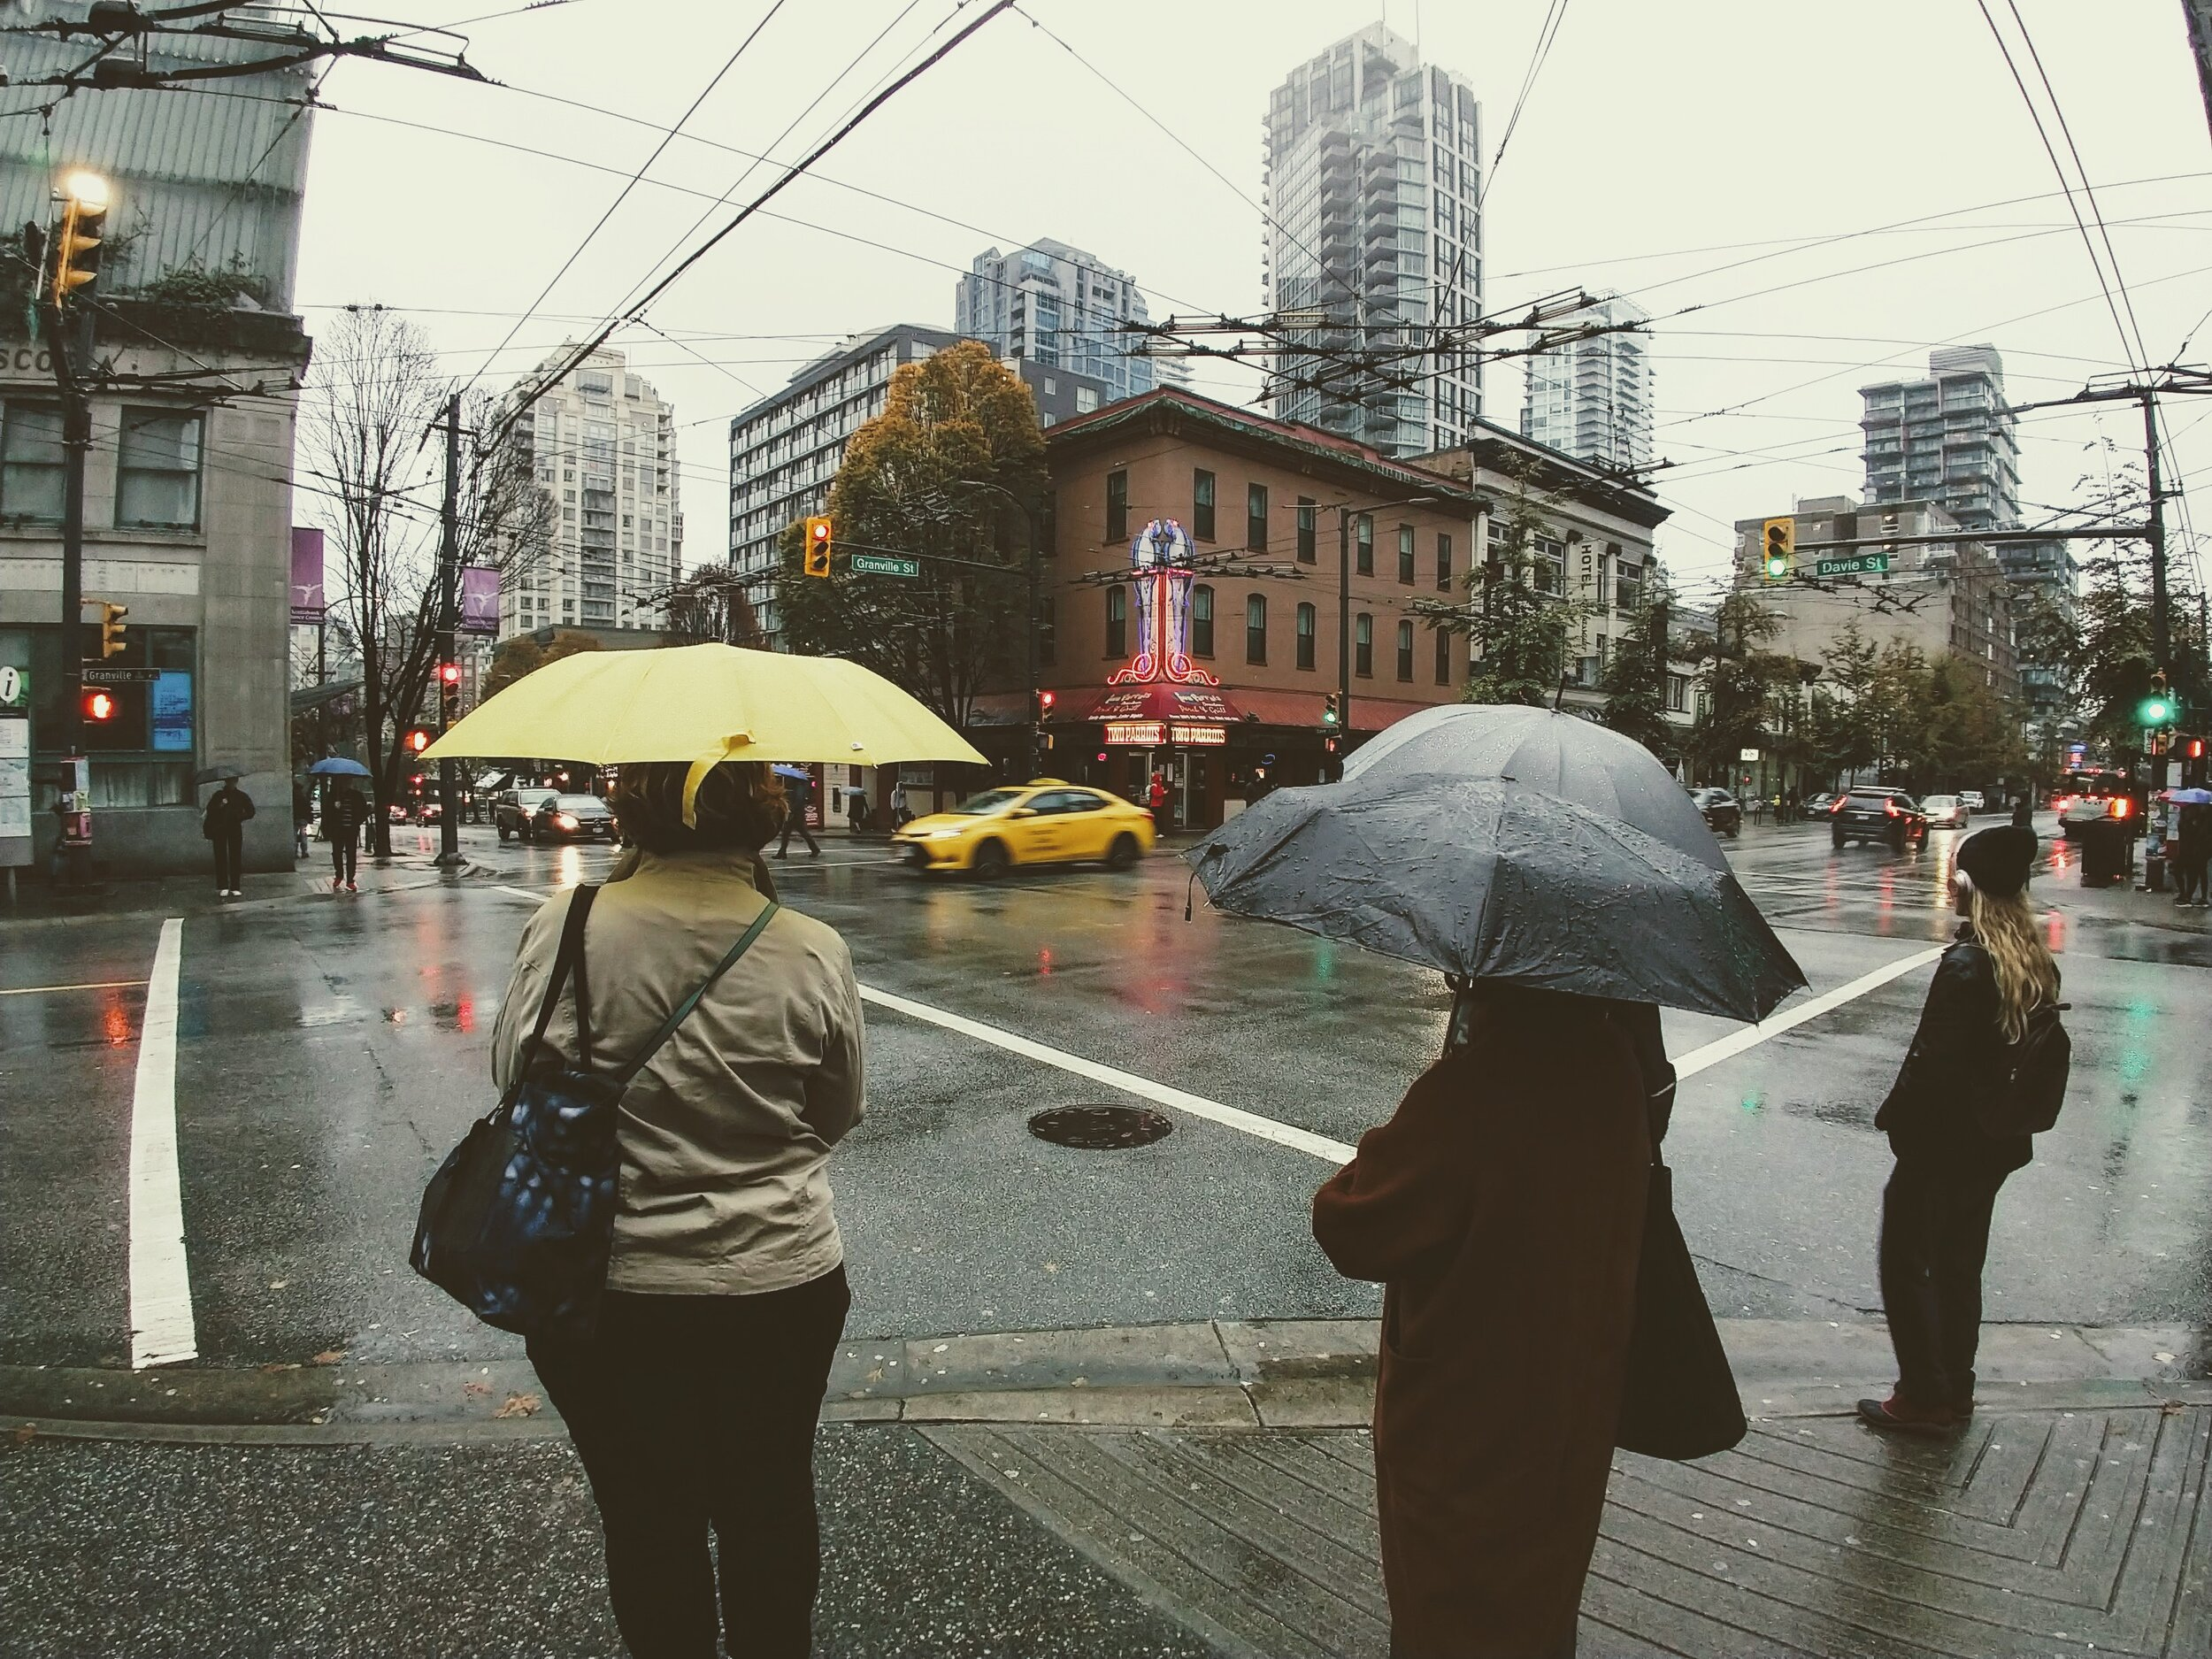 Rainy days in Downtown Vancouver, British Columbia